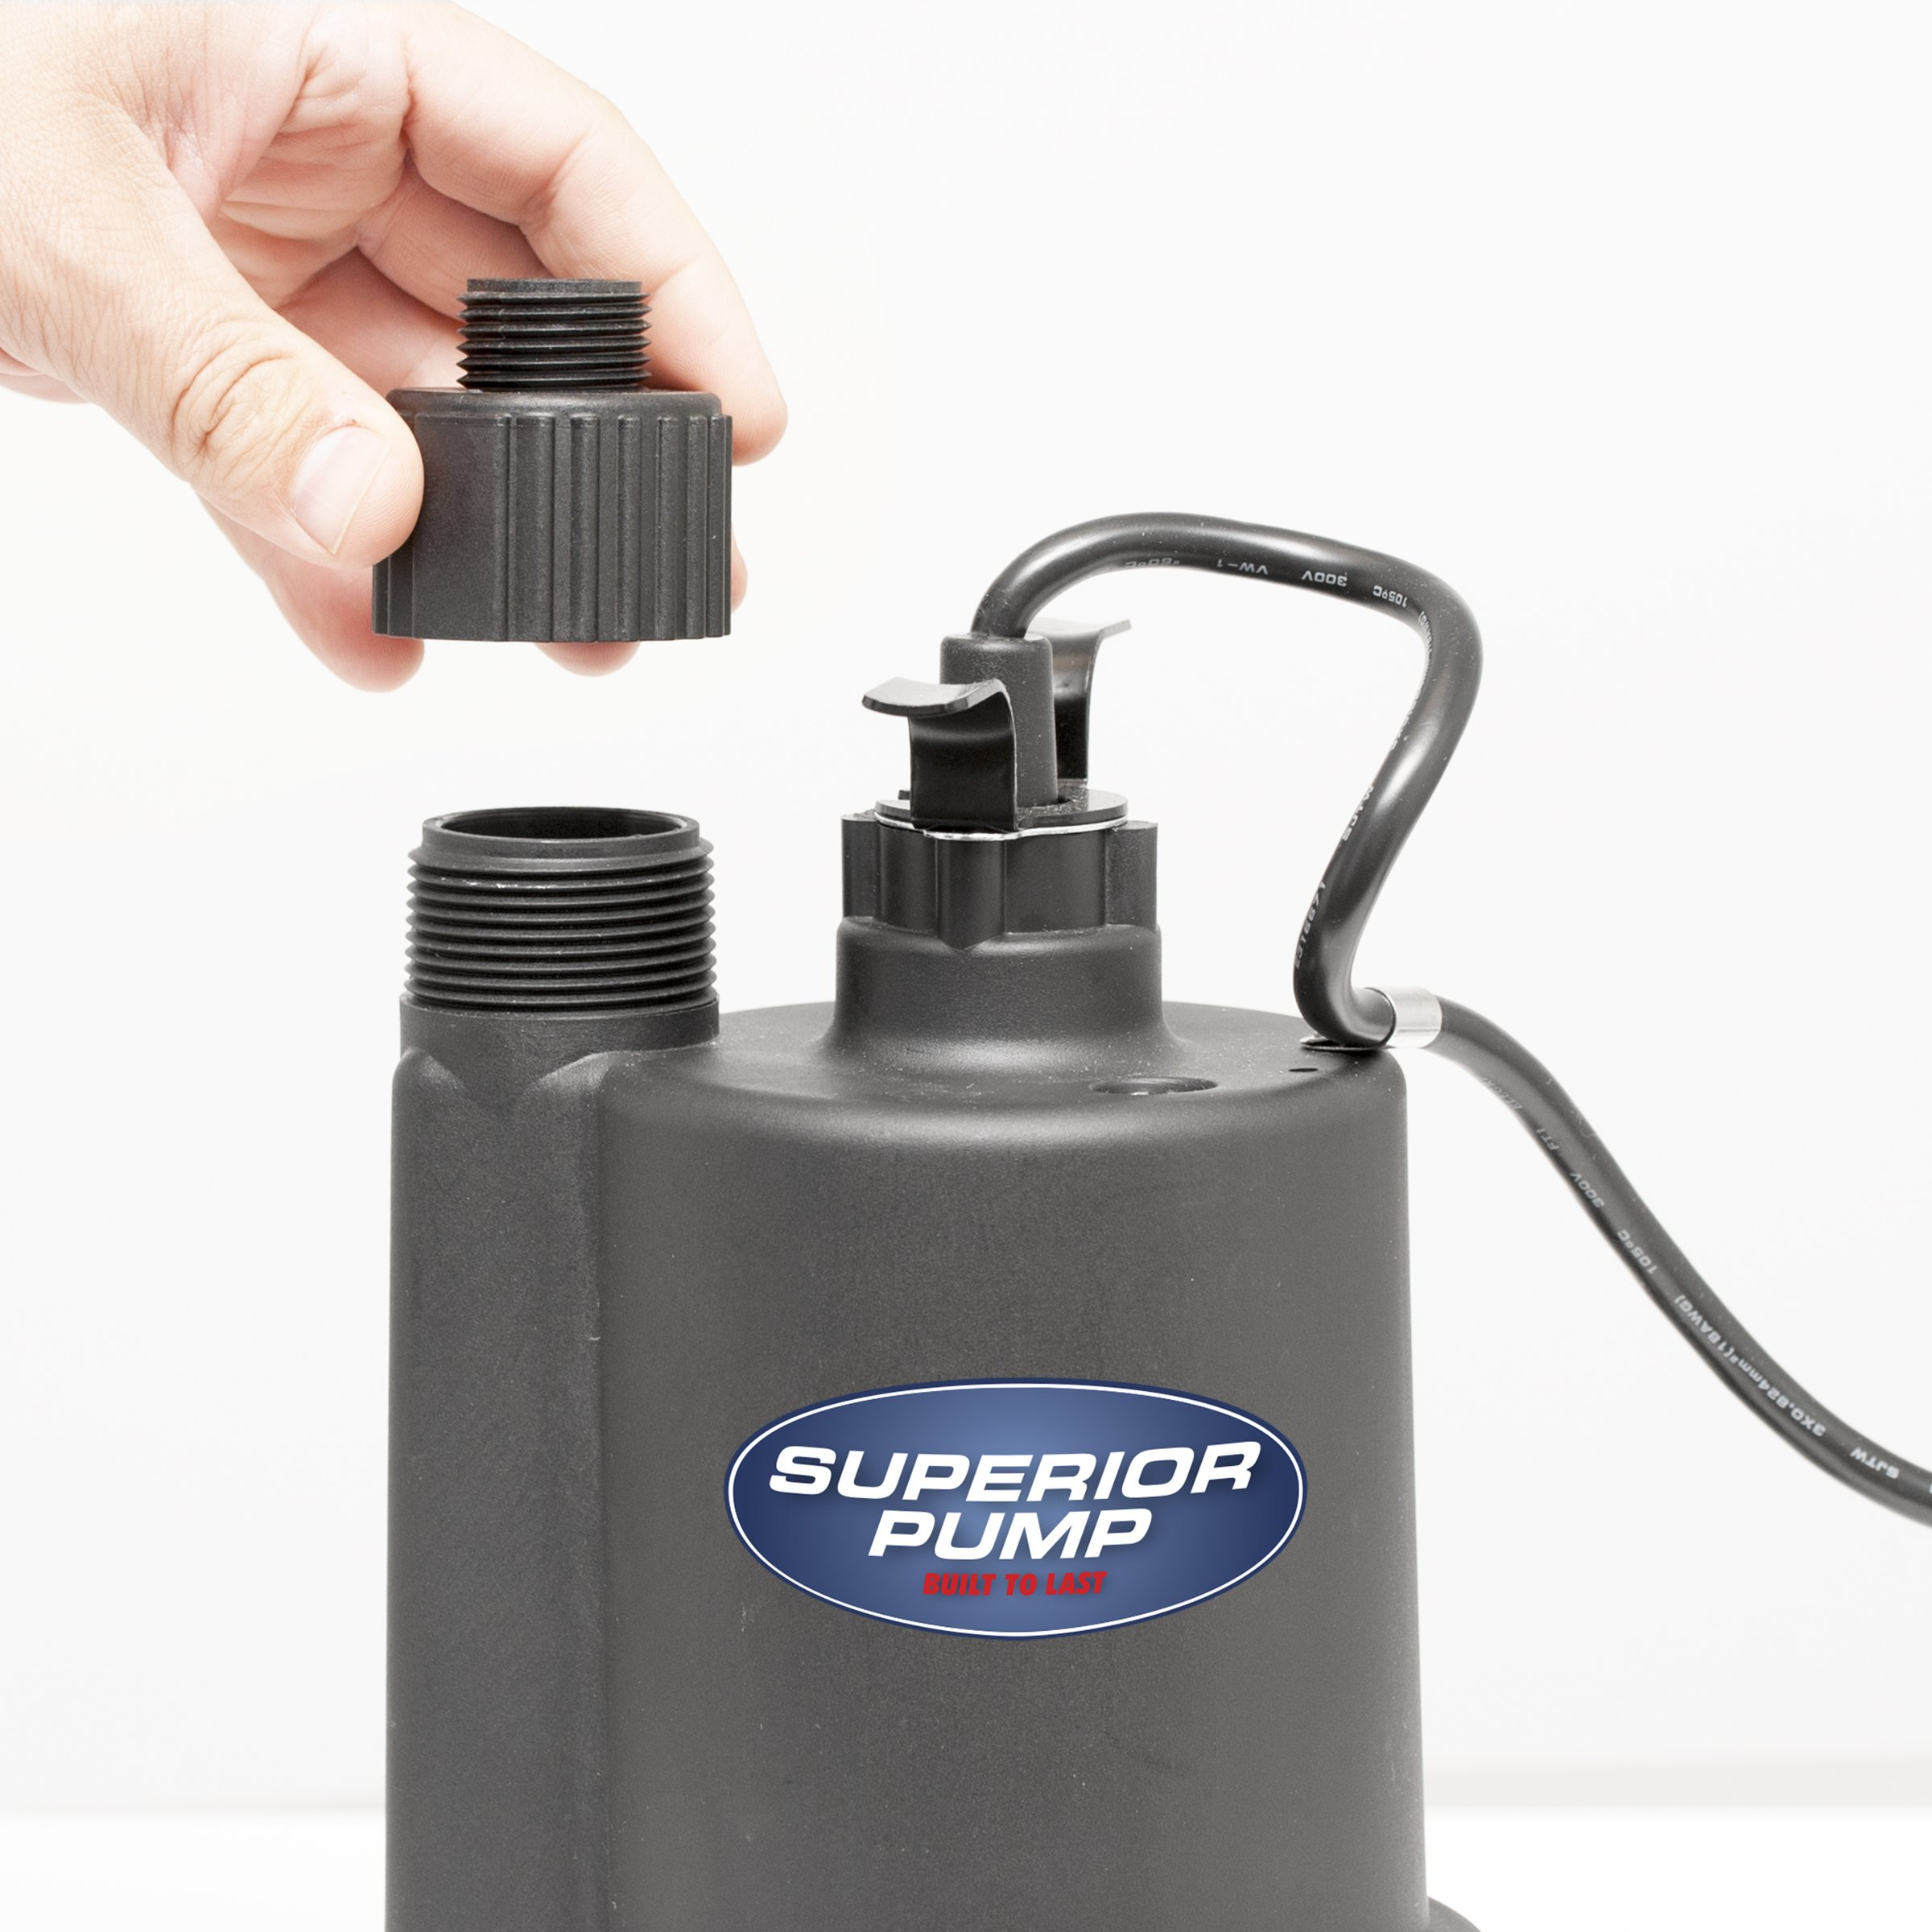 Superior Pump 91025 1/5 HP Thermoplastic Submersible Utility Pump with 10-Foot Cord by Superior Pump (Image #4)